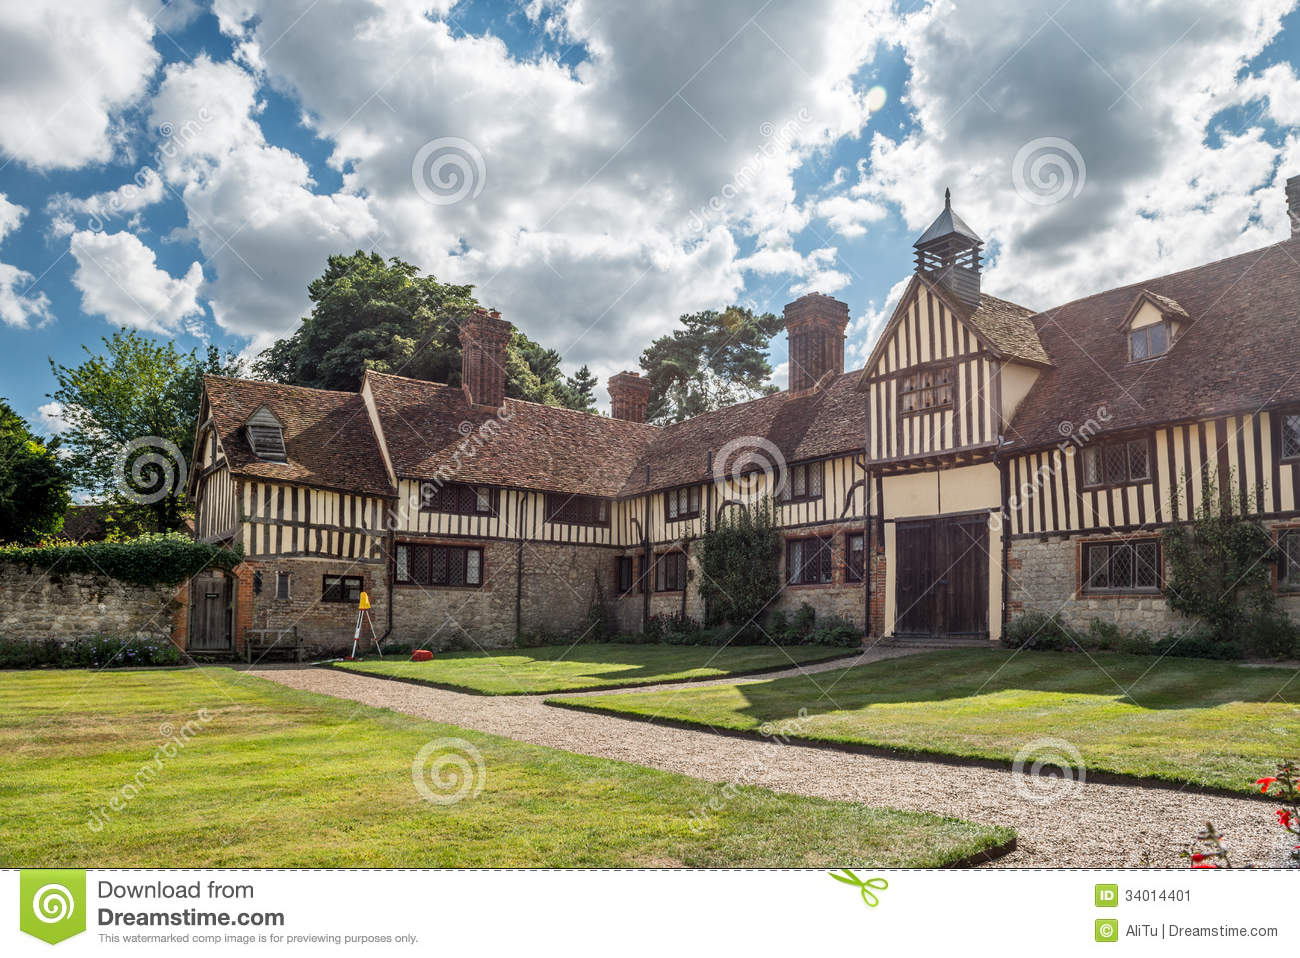 Stock Image National Trust Ightham Mote Medieval Manor House Kent Uk Amazing Th Century Moated Located Miles East Sevenoaks Image34014401 on unique house plans with courtyard